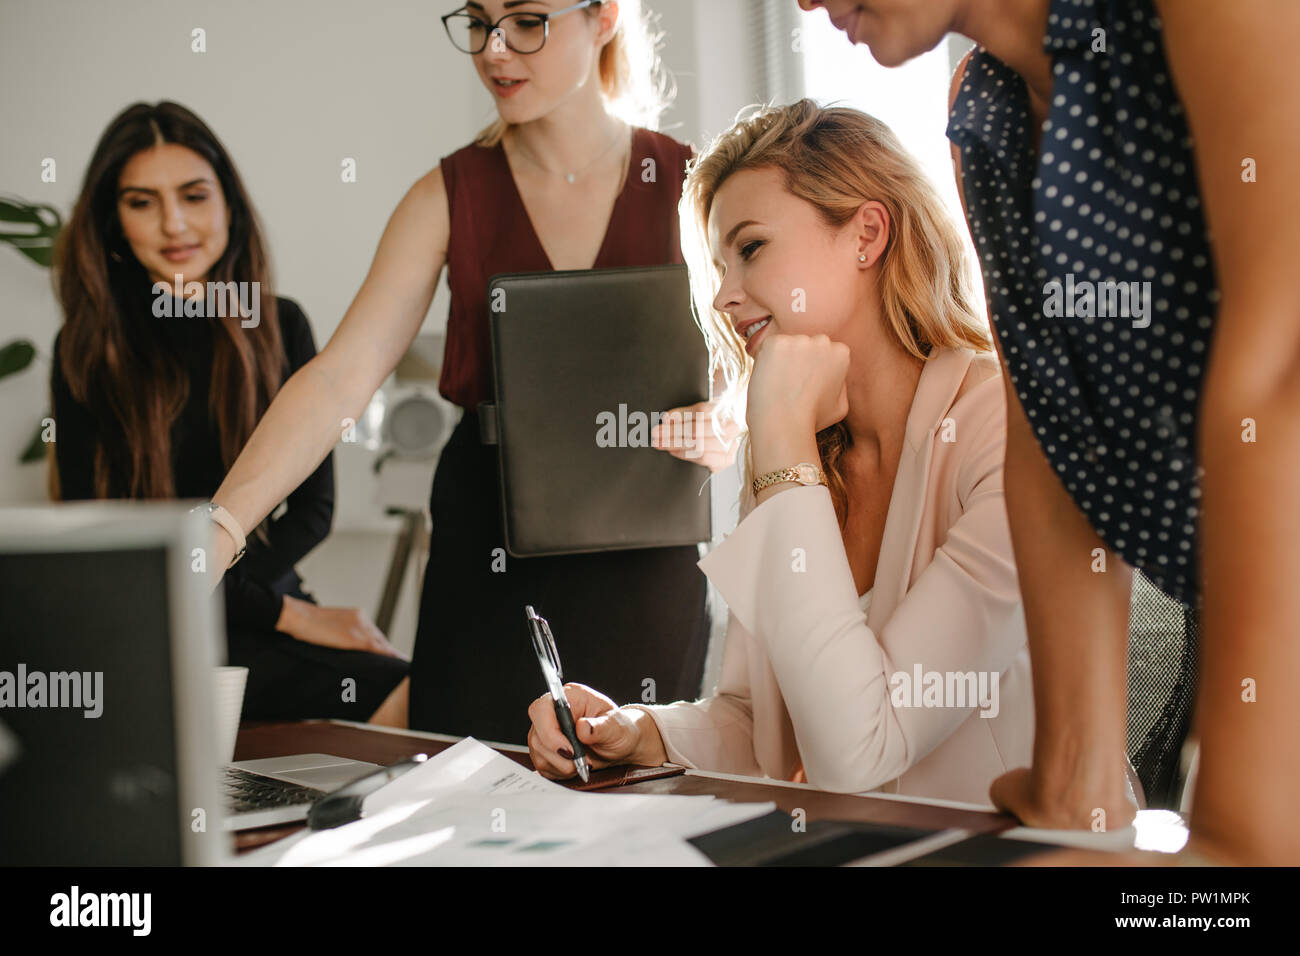 Group of young businesswomen in casuals looking at laptop and discussing work. Multi-ethnic female coworkers working together in office. Stock Photo